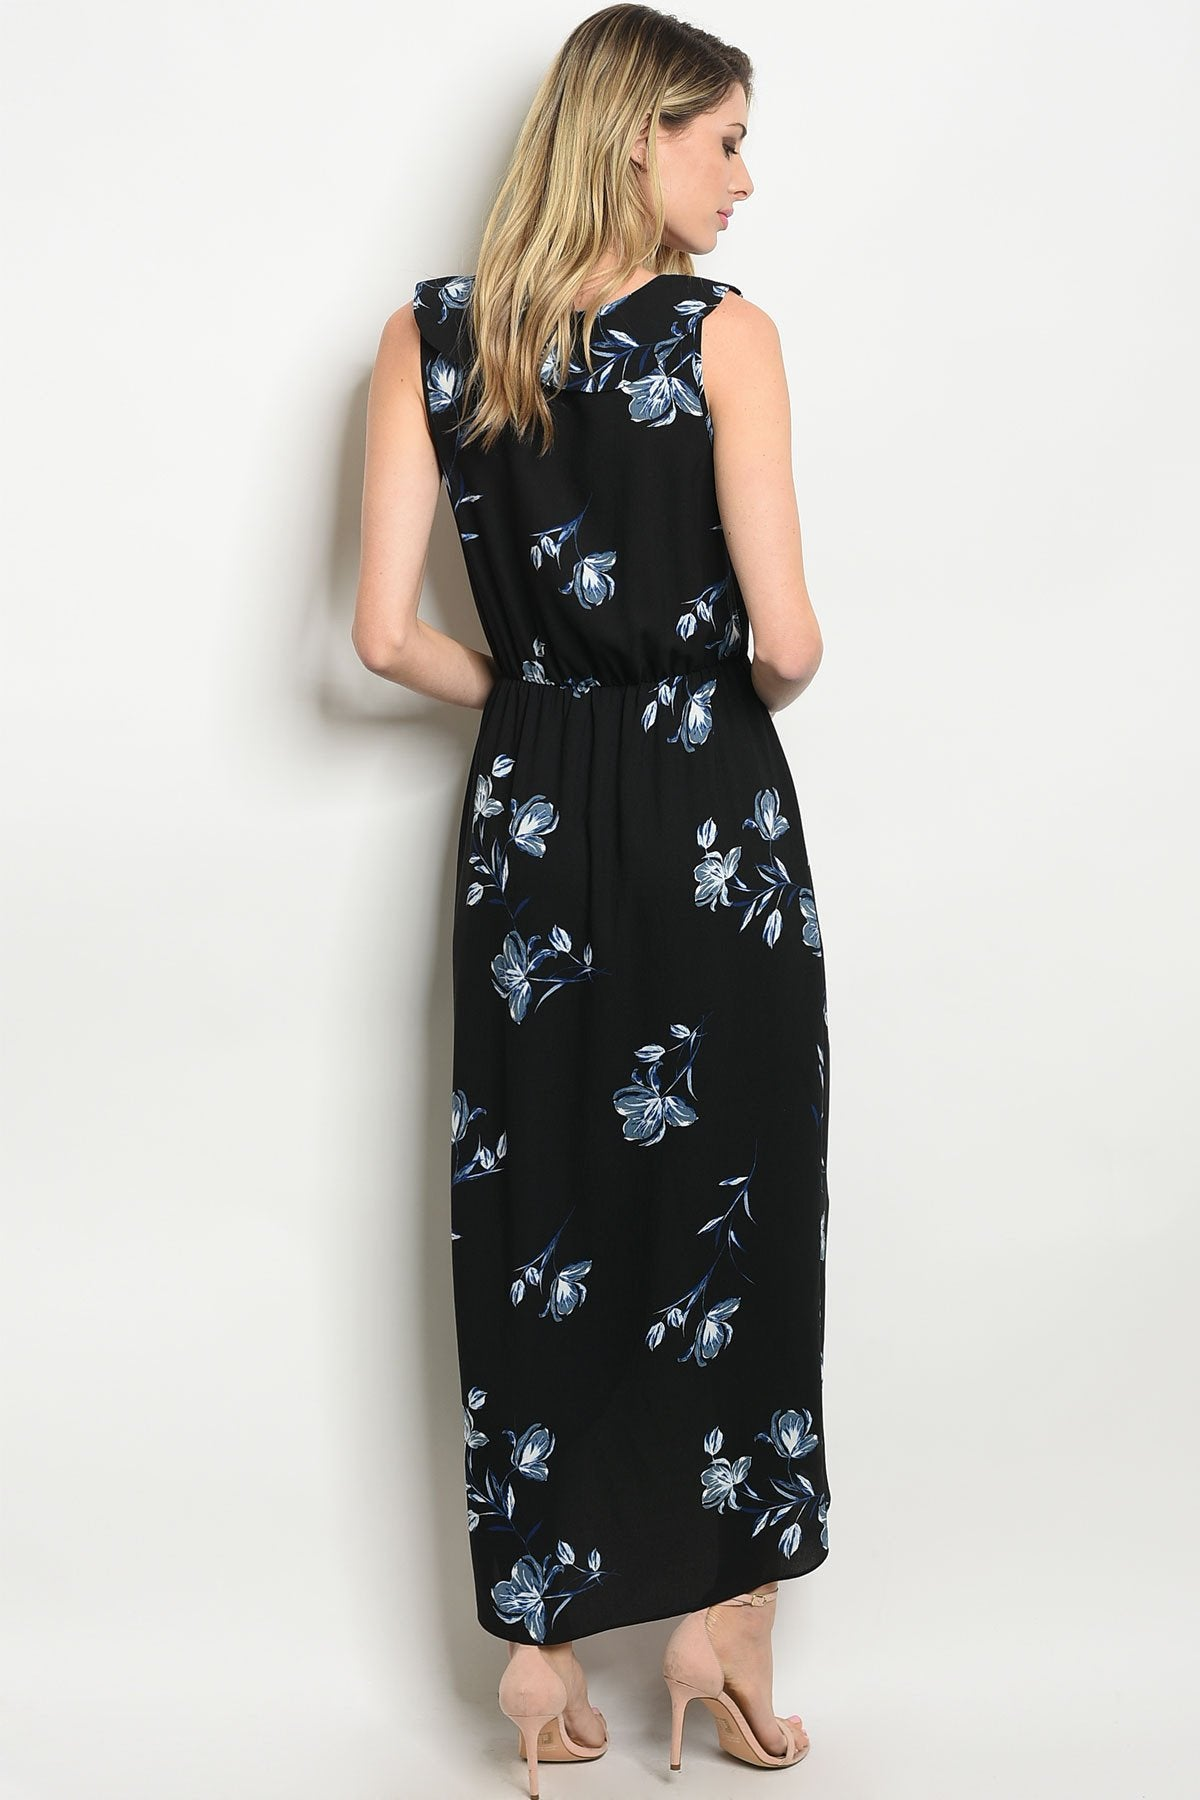 Black Floral Dress - Manifest Best Boutique